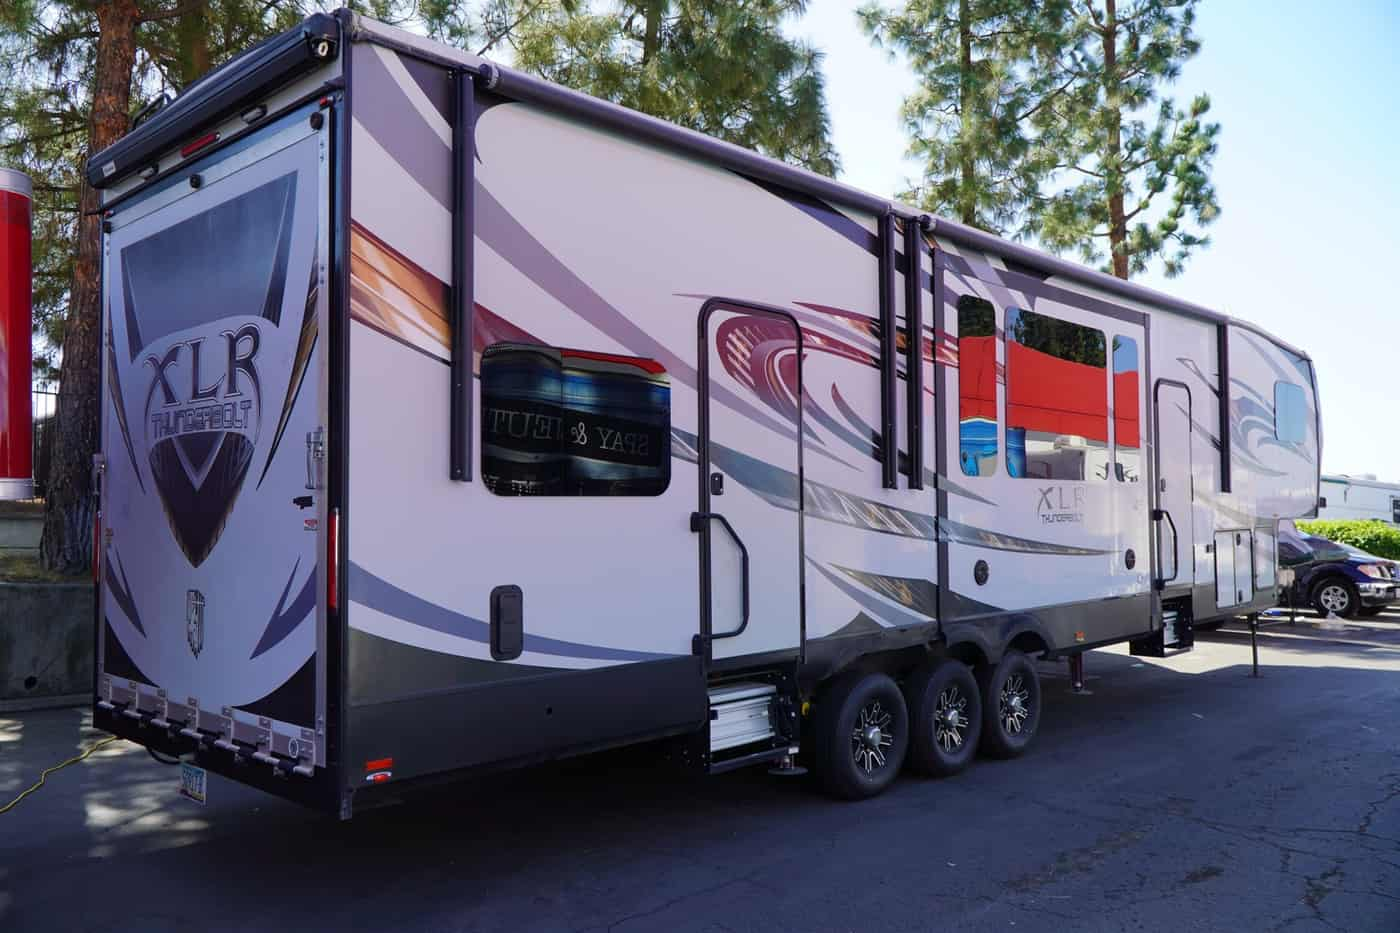 Travel Trailer Repair Near Me